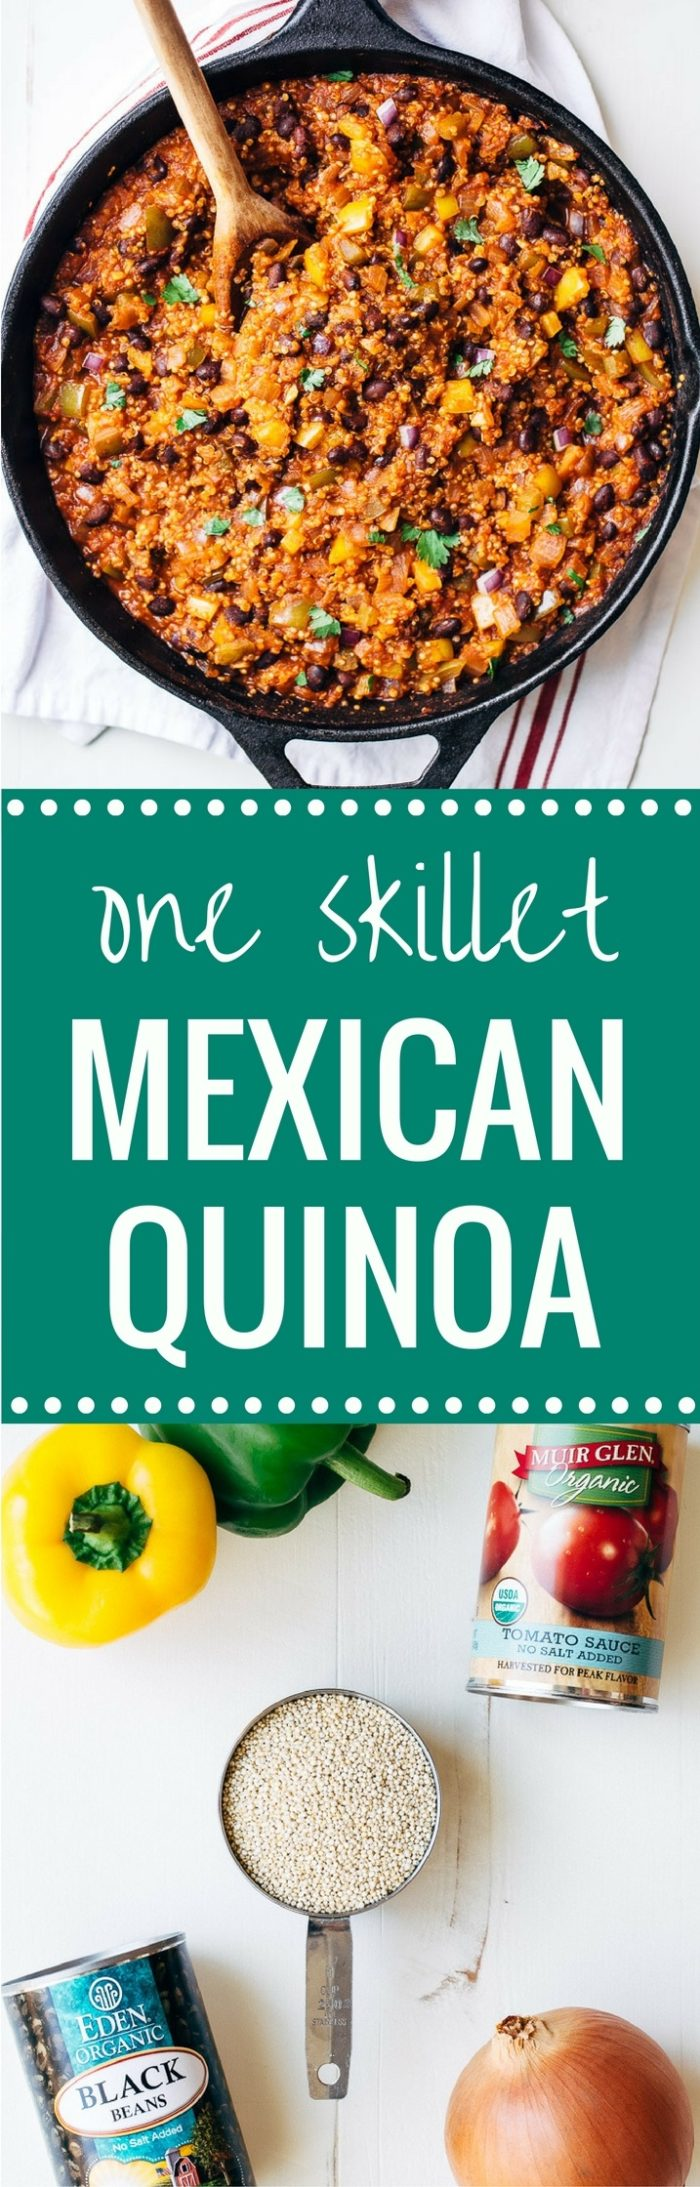 One Skillet Mexican Quinoa- an easy one-pot meal that's perfect for busy weeknights. Each serving has 20 grams of protein! (vegan + gluten-free) | Making Thyme for Health